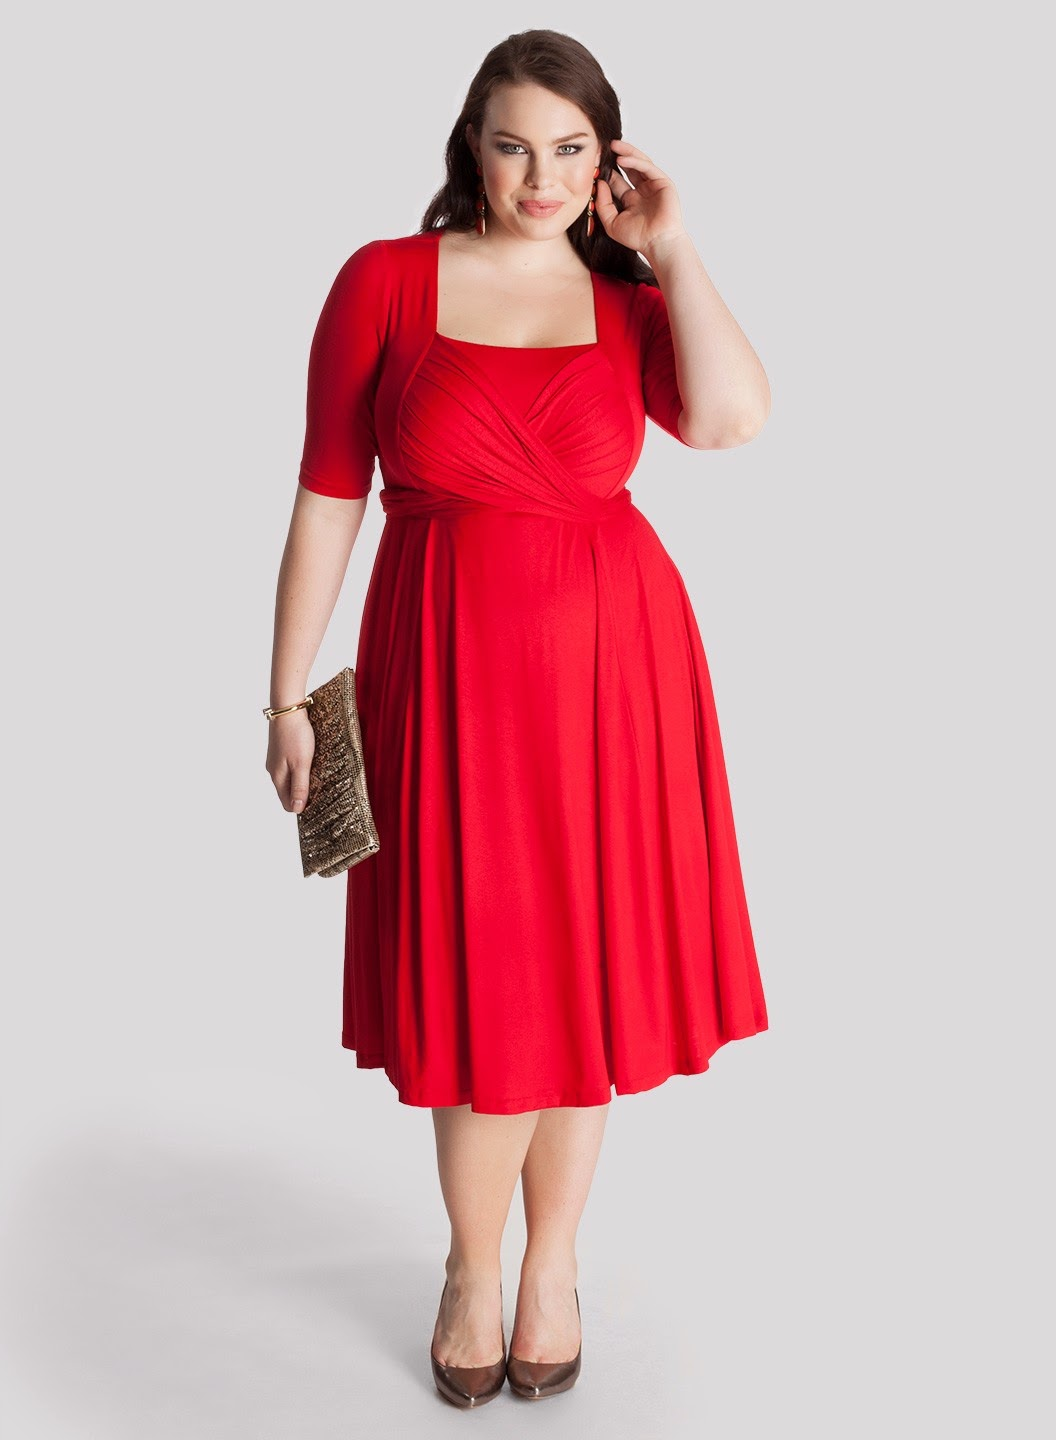 hd wallpapers glam dresses for plus size baadesignandroid.gq, Badezimmer ideen